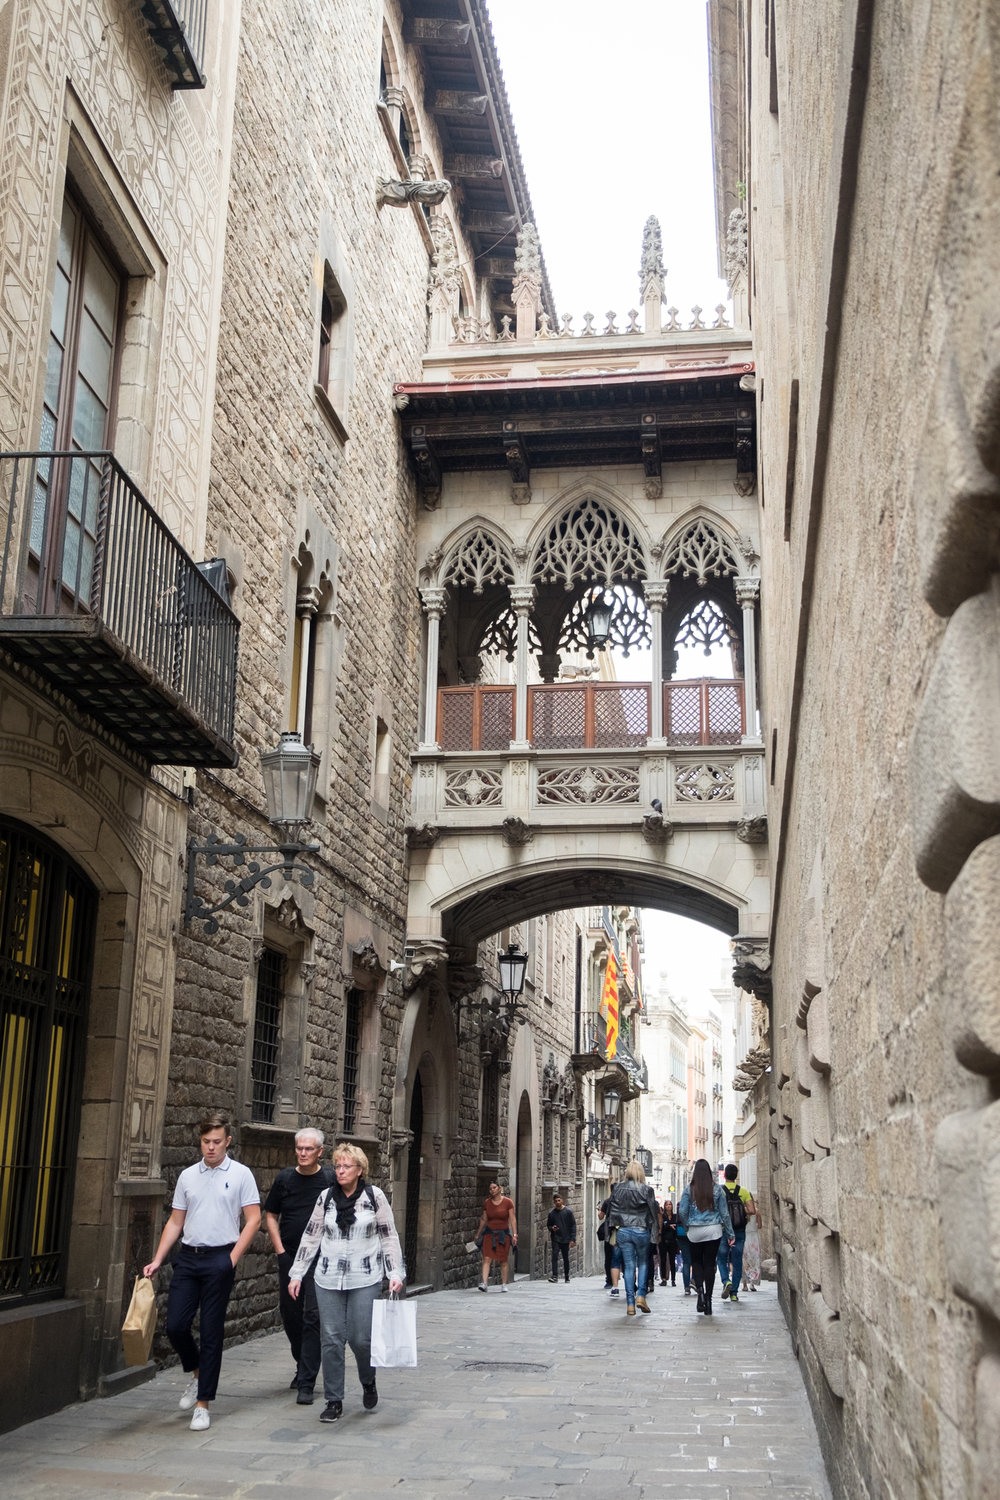 In El Gotic, the gothic quarter of Barcelona